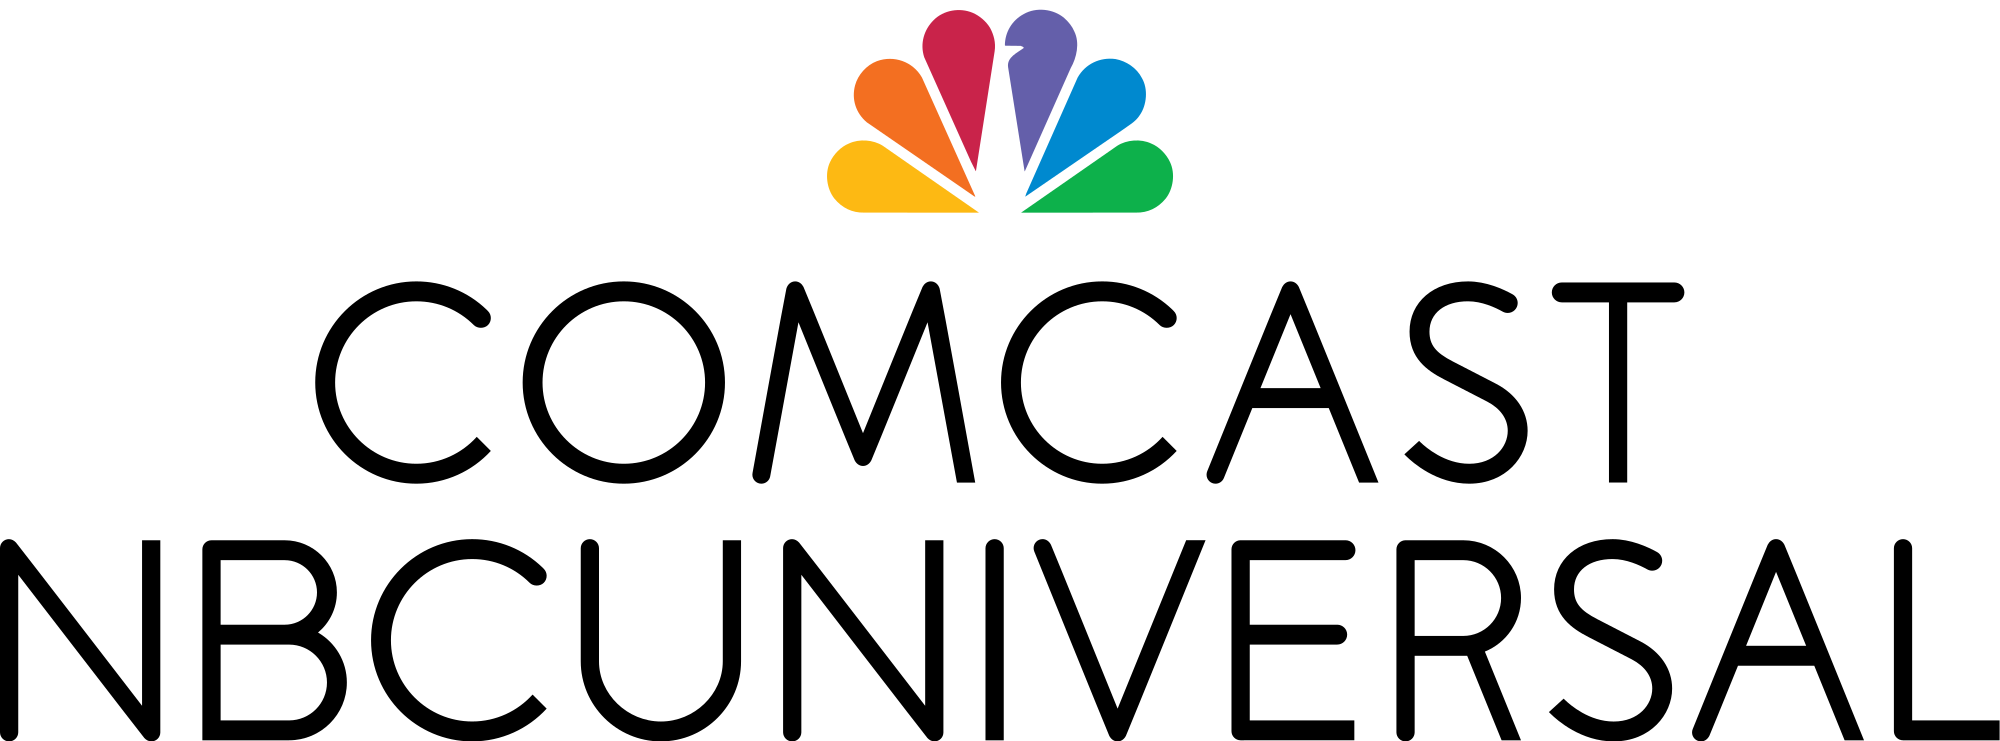 Comcast logo png. File nbcuniversal svg wikimedia